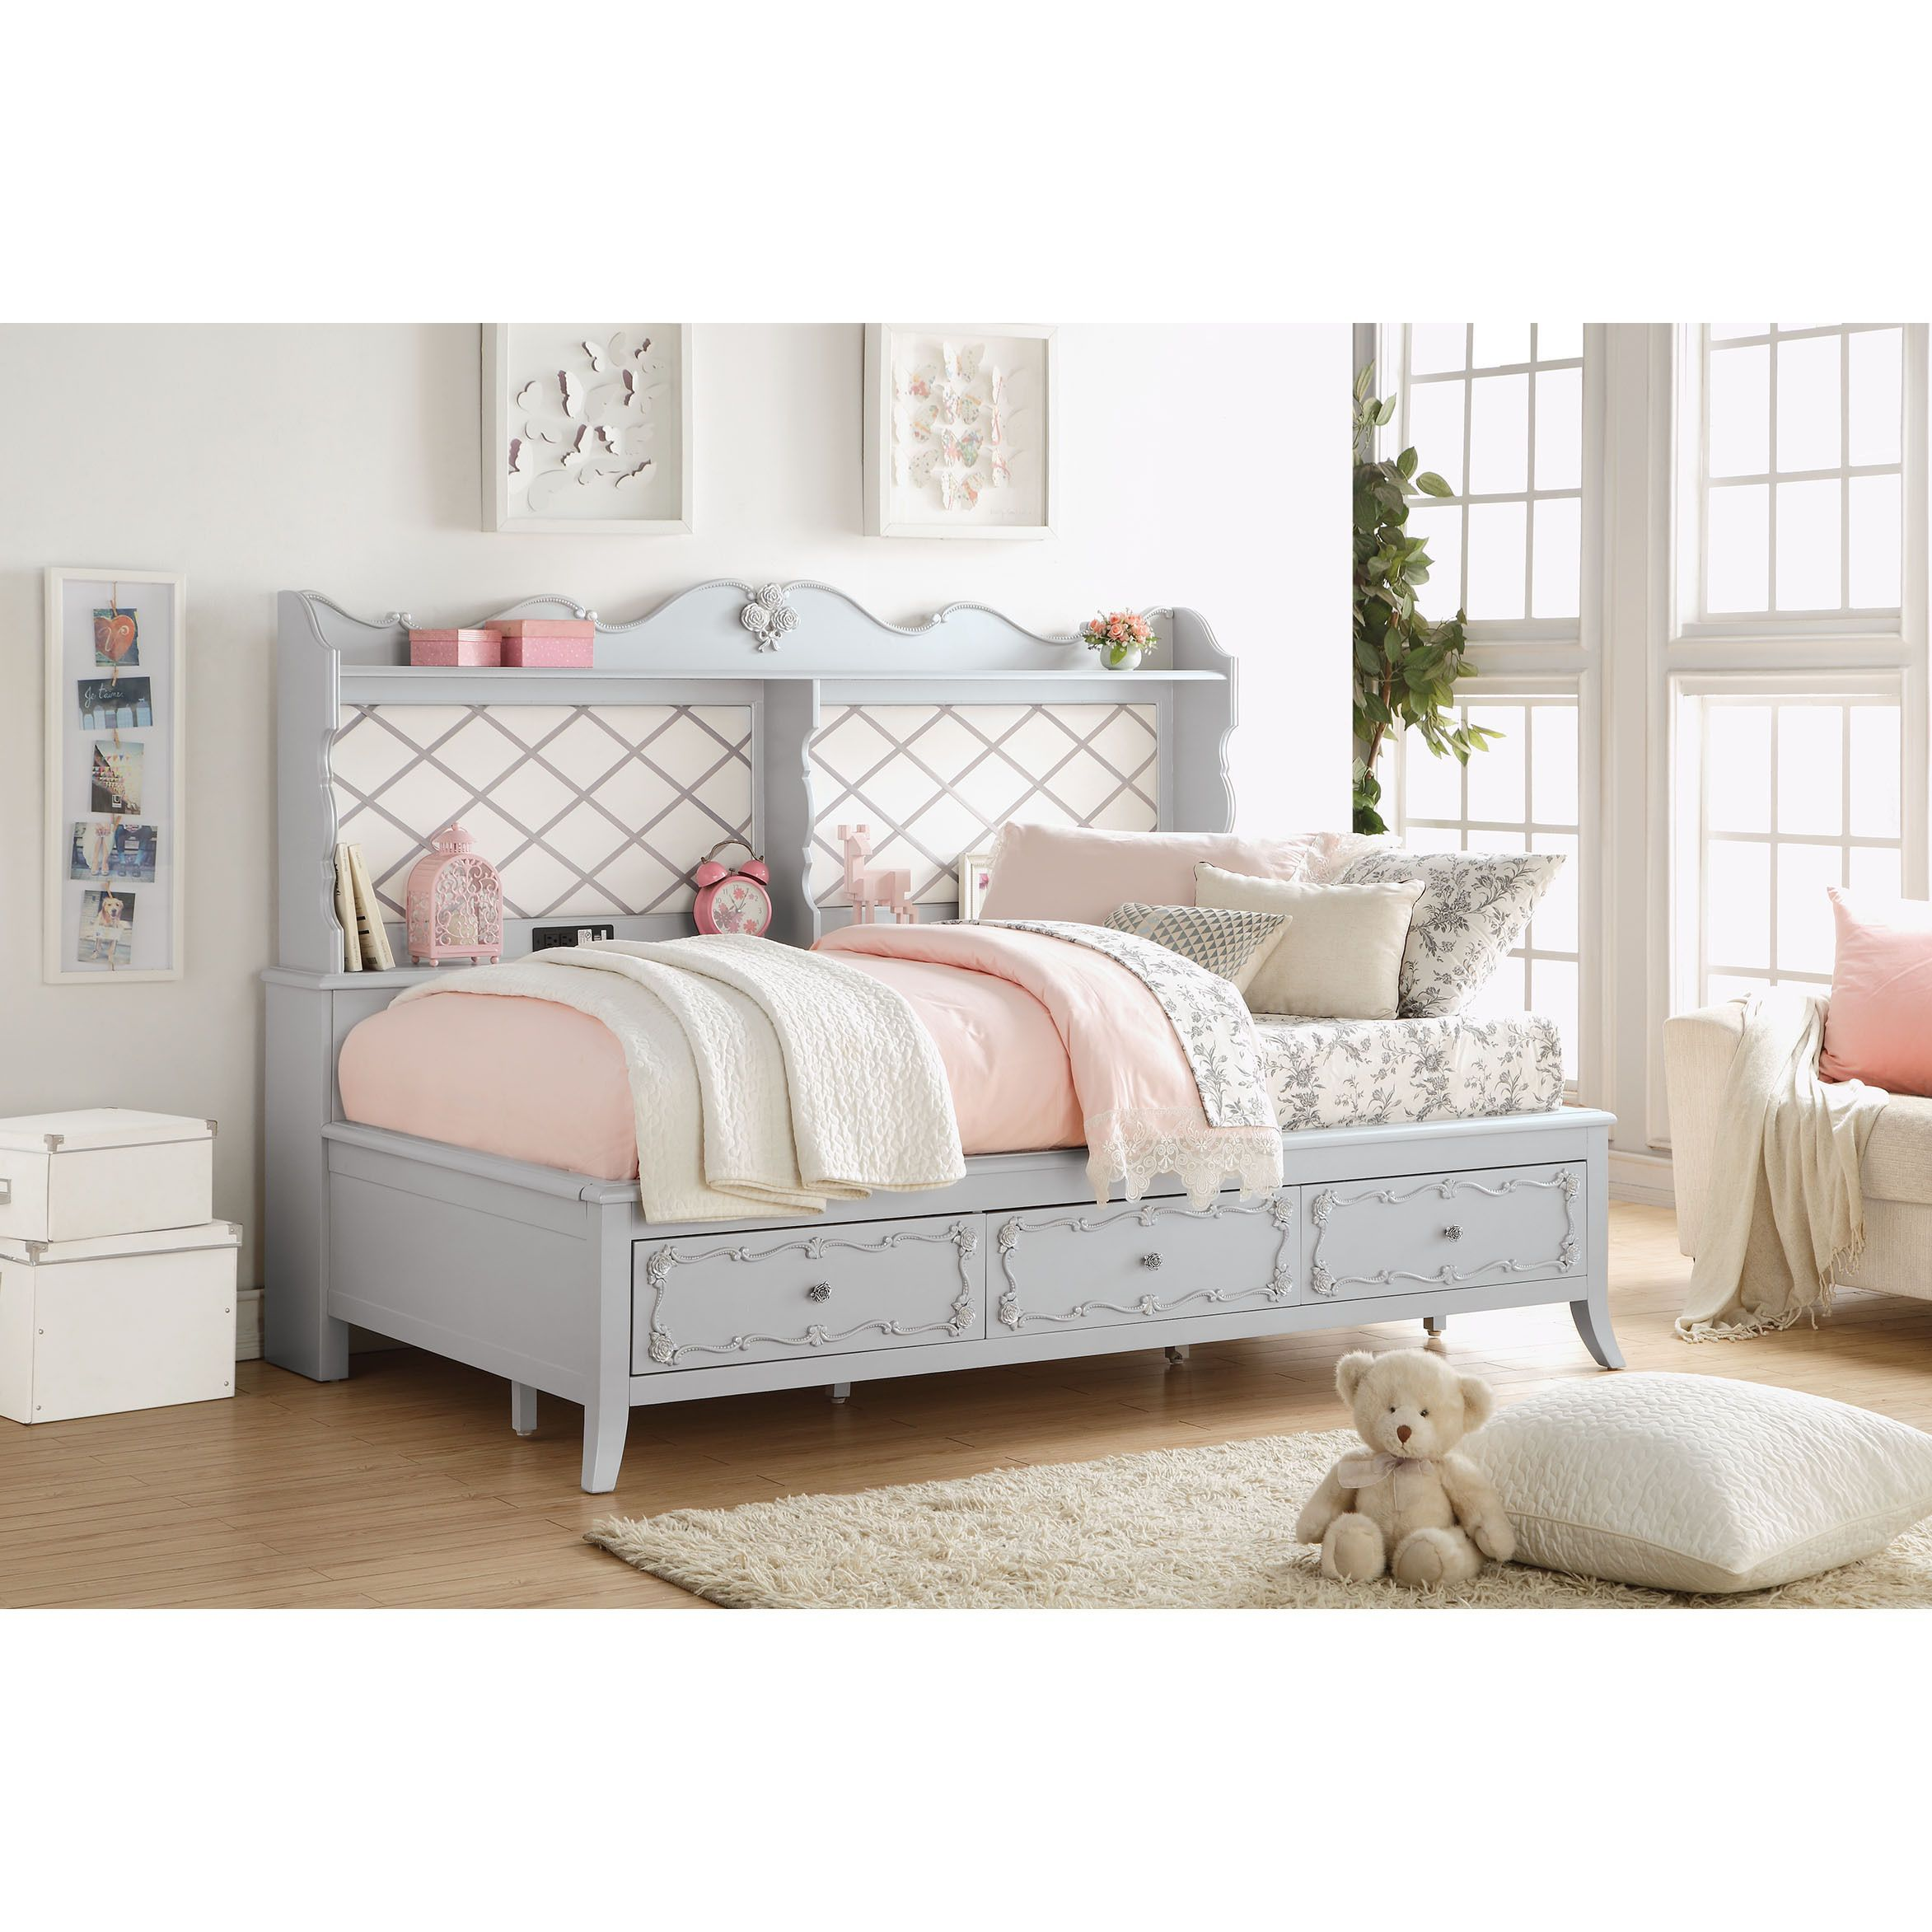 platform home berg beds oj with size furniture drawers drawer full bed drawersberg girls storage bedroom by reviews